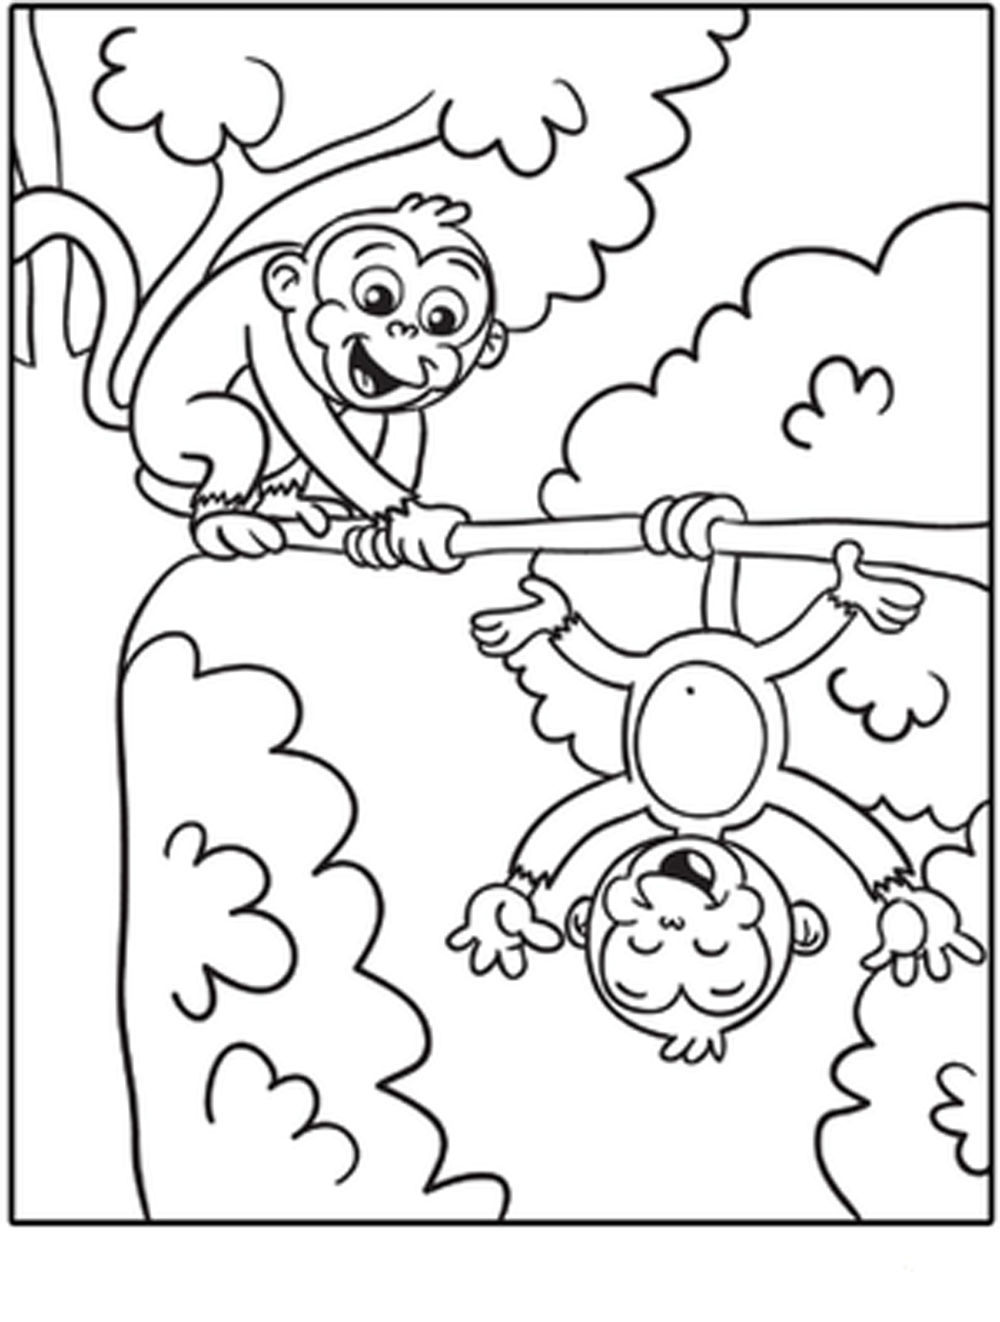 freeprintablemonkeycoloringpages